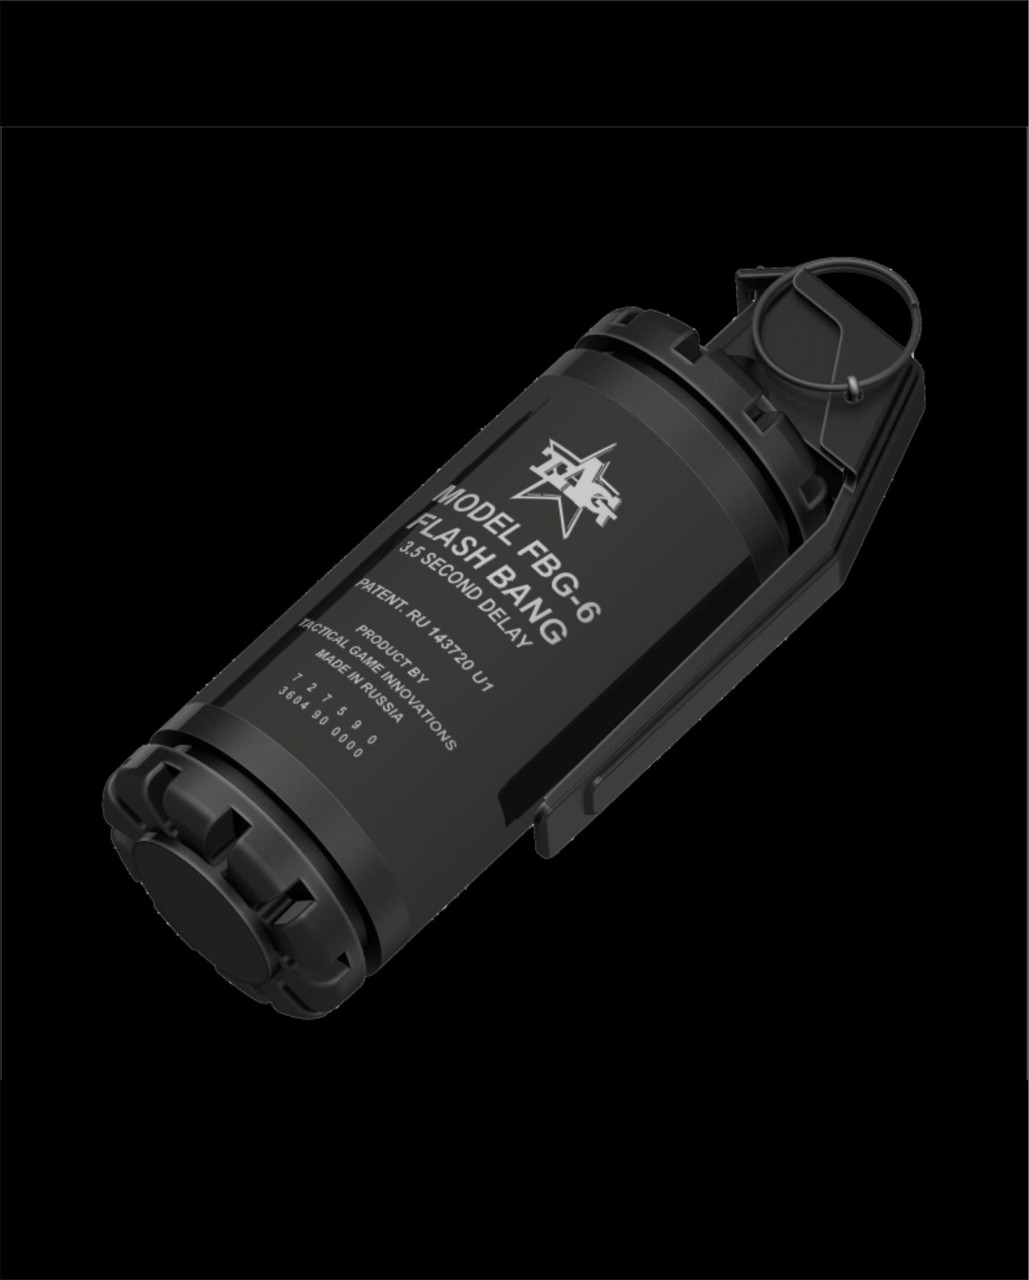 DISCONTINUED Taginn FBG-6 Flash Grenade Pack of 6 -- Hazmat Shipping or Event Pickup